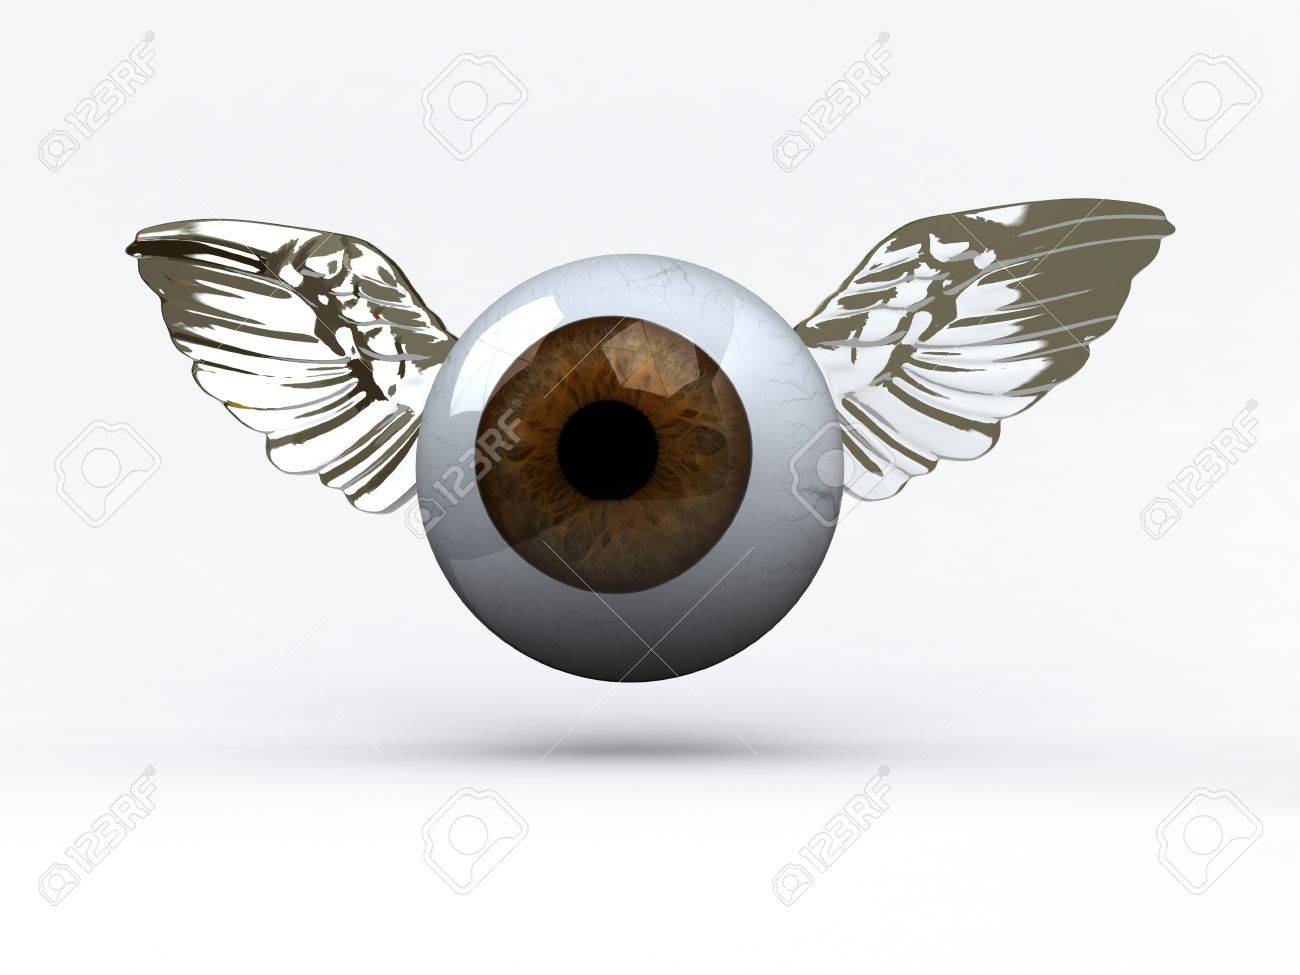 eye with wings that fly, 3d illustration Stock Photo - 16903839